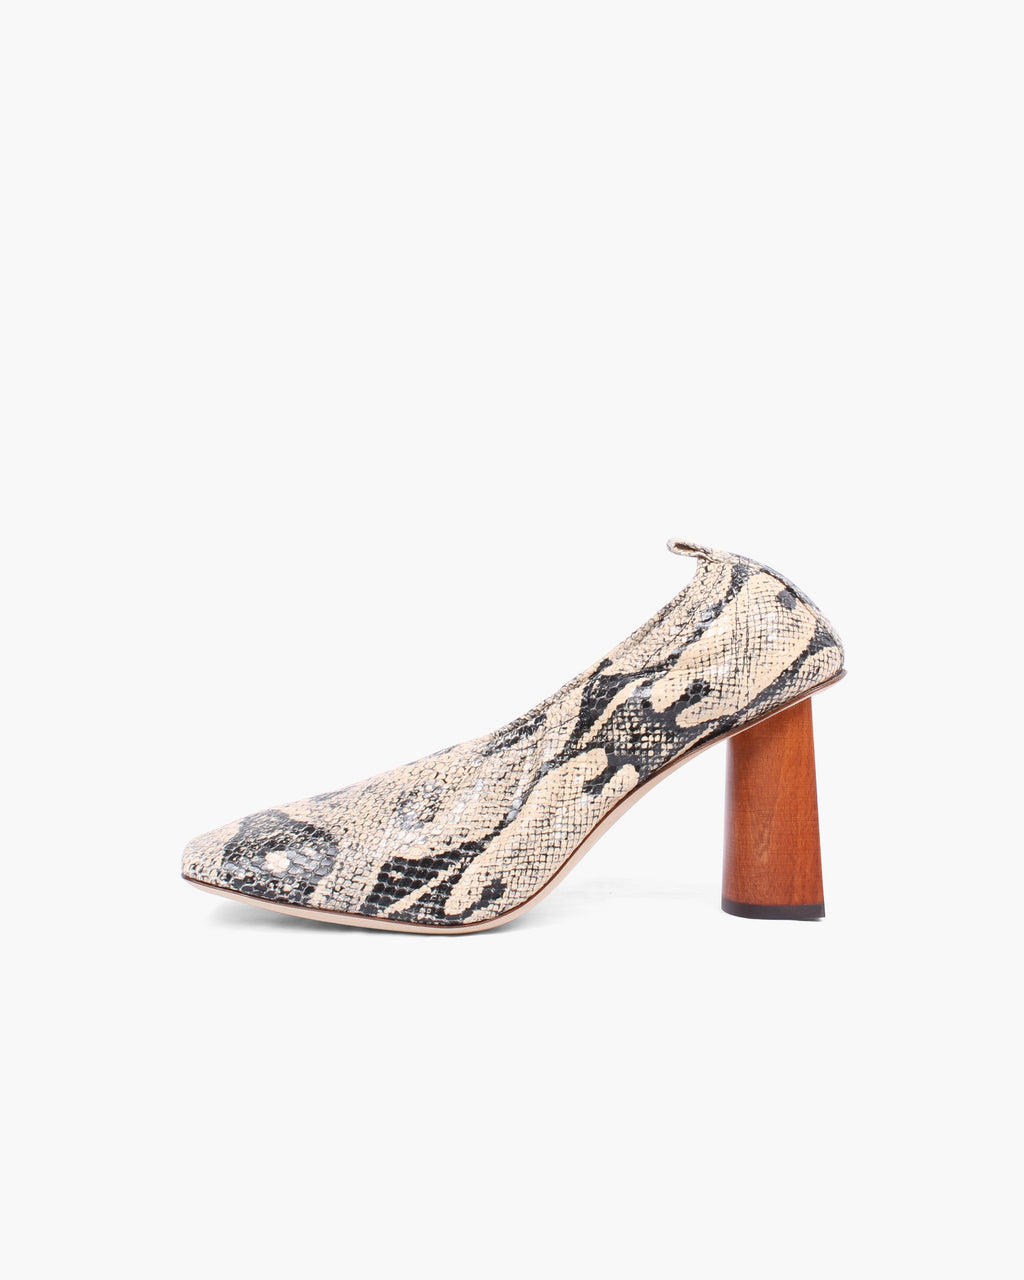 Edie Pumps Leather Print Boa Beige - WEBSHOP EXCLUSIVE - ADDITIONAL 10% OFF SALE PRICE